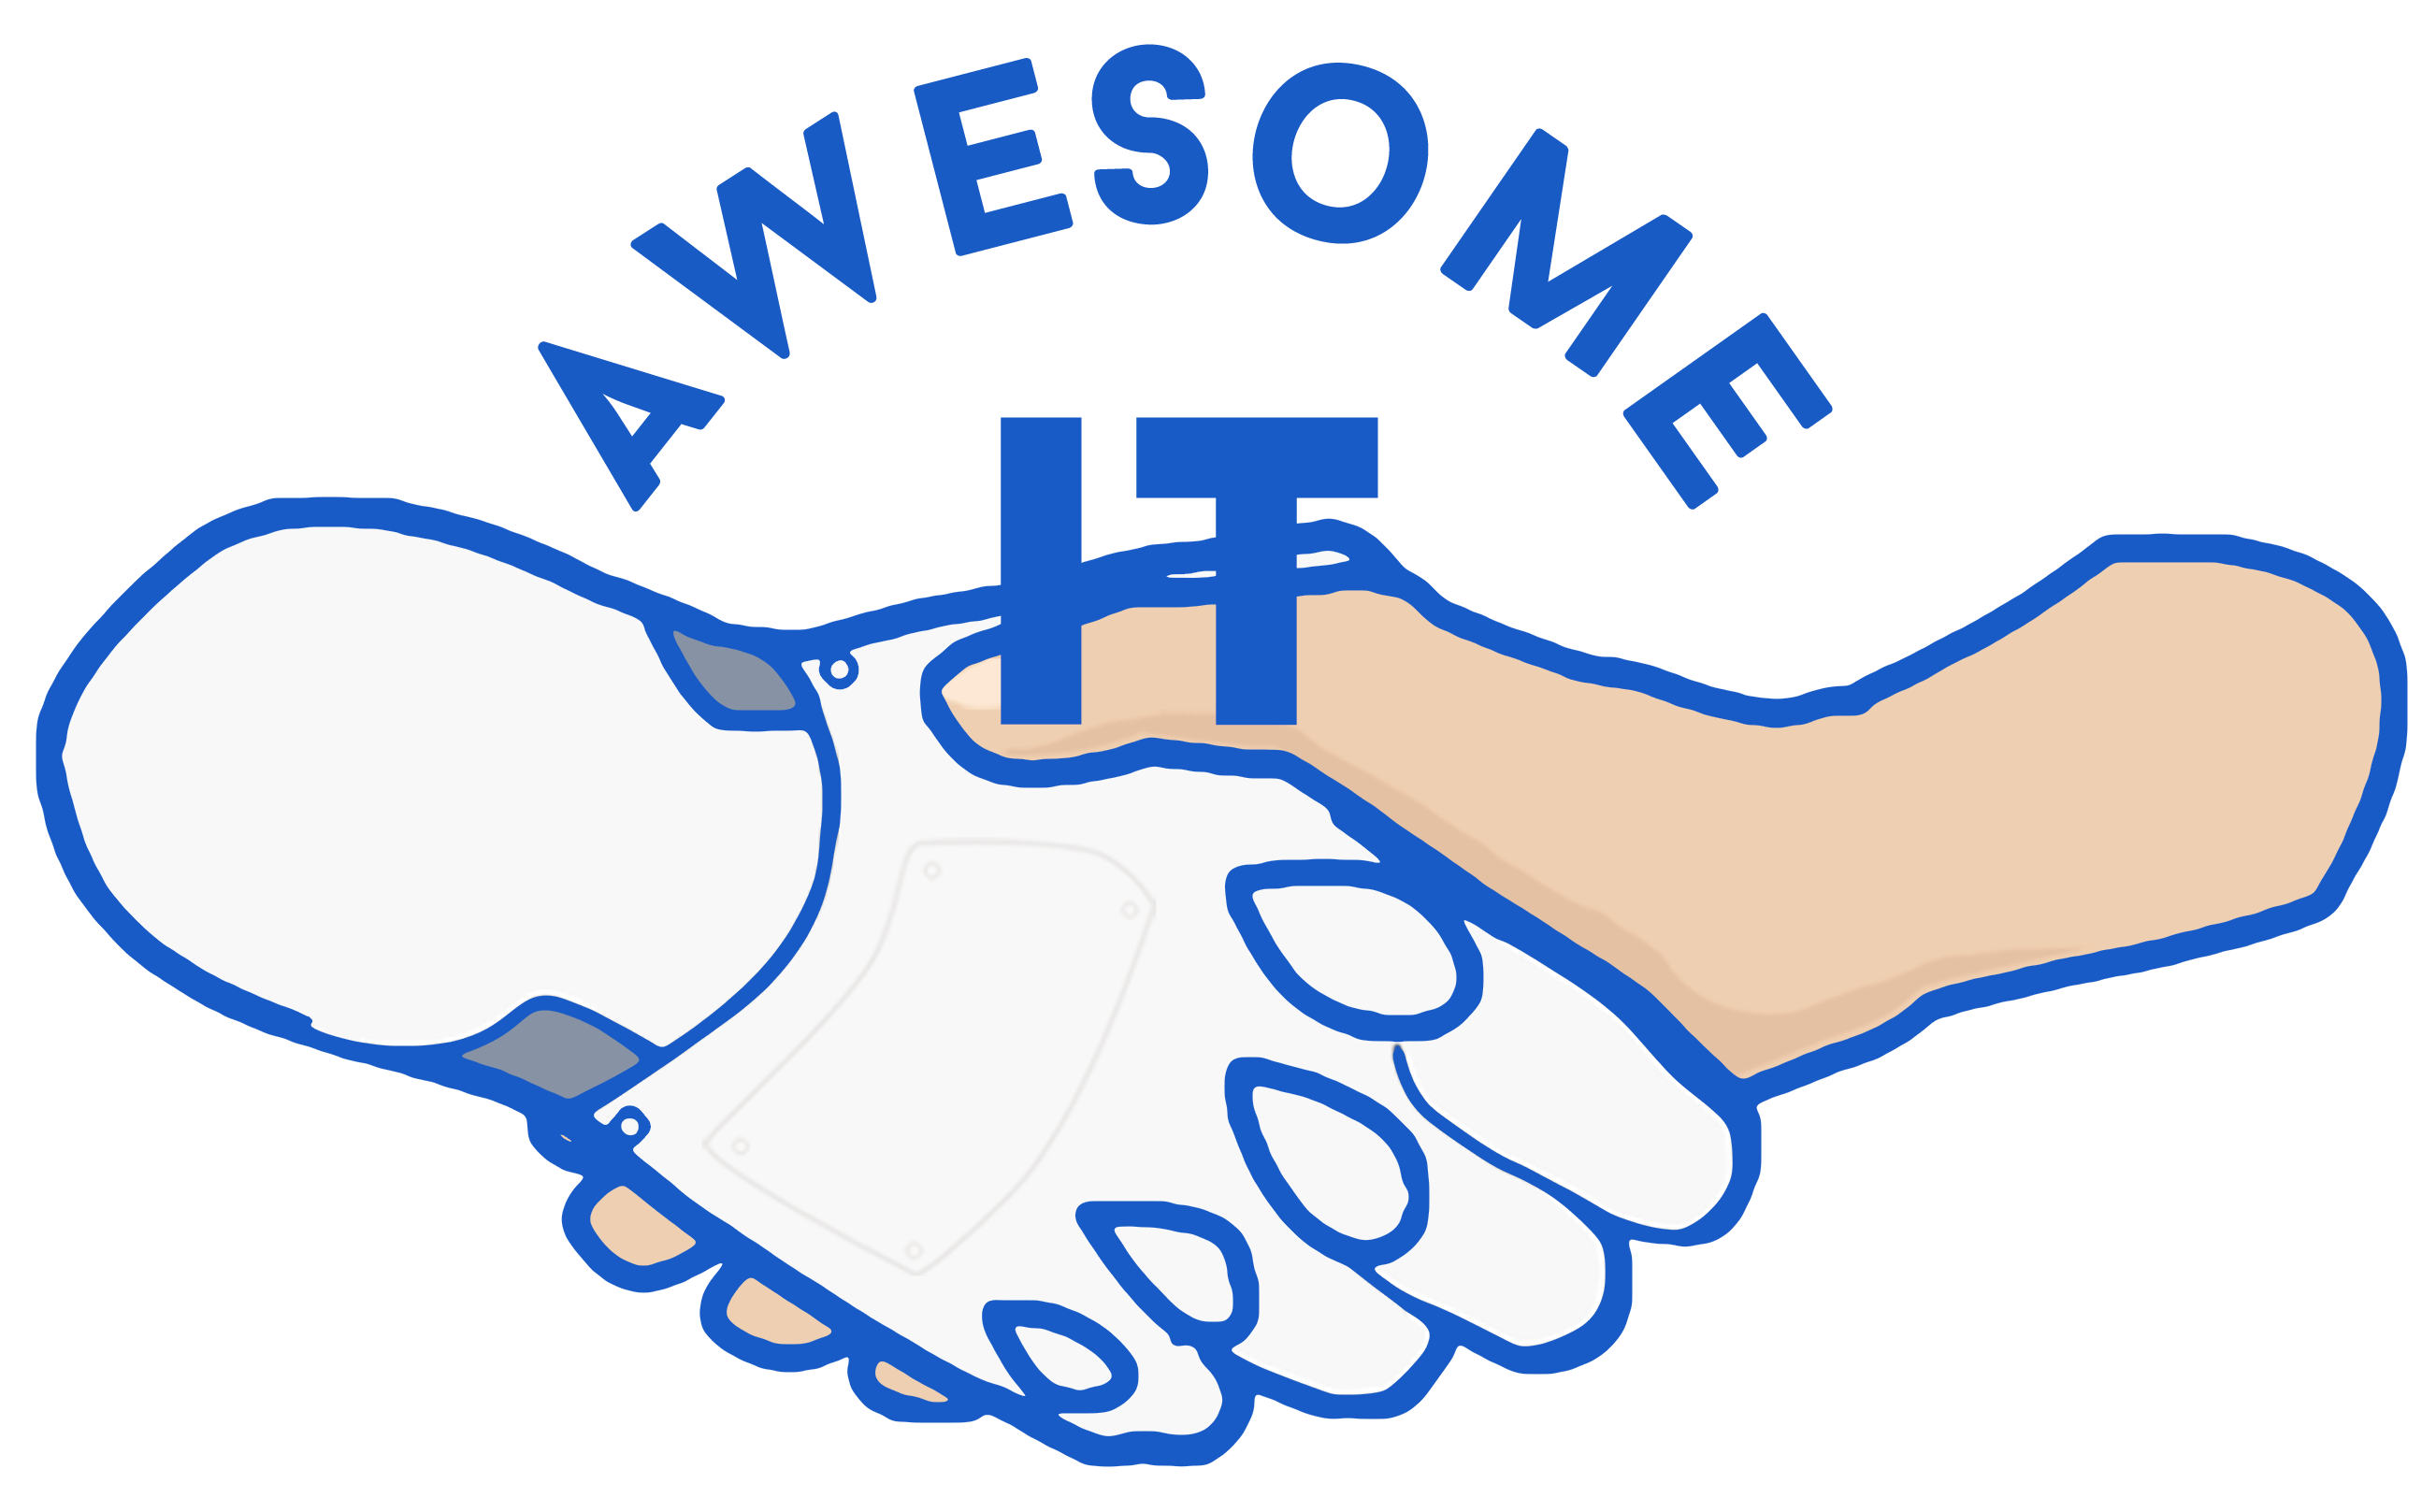 AwesomeIT logo